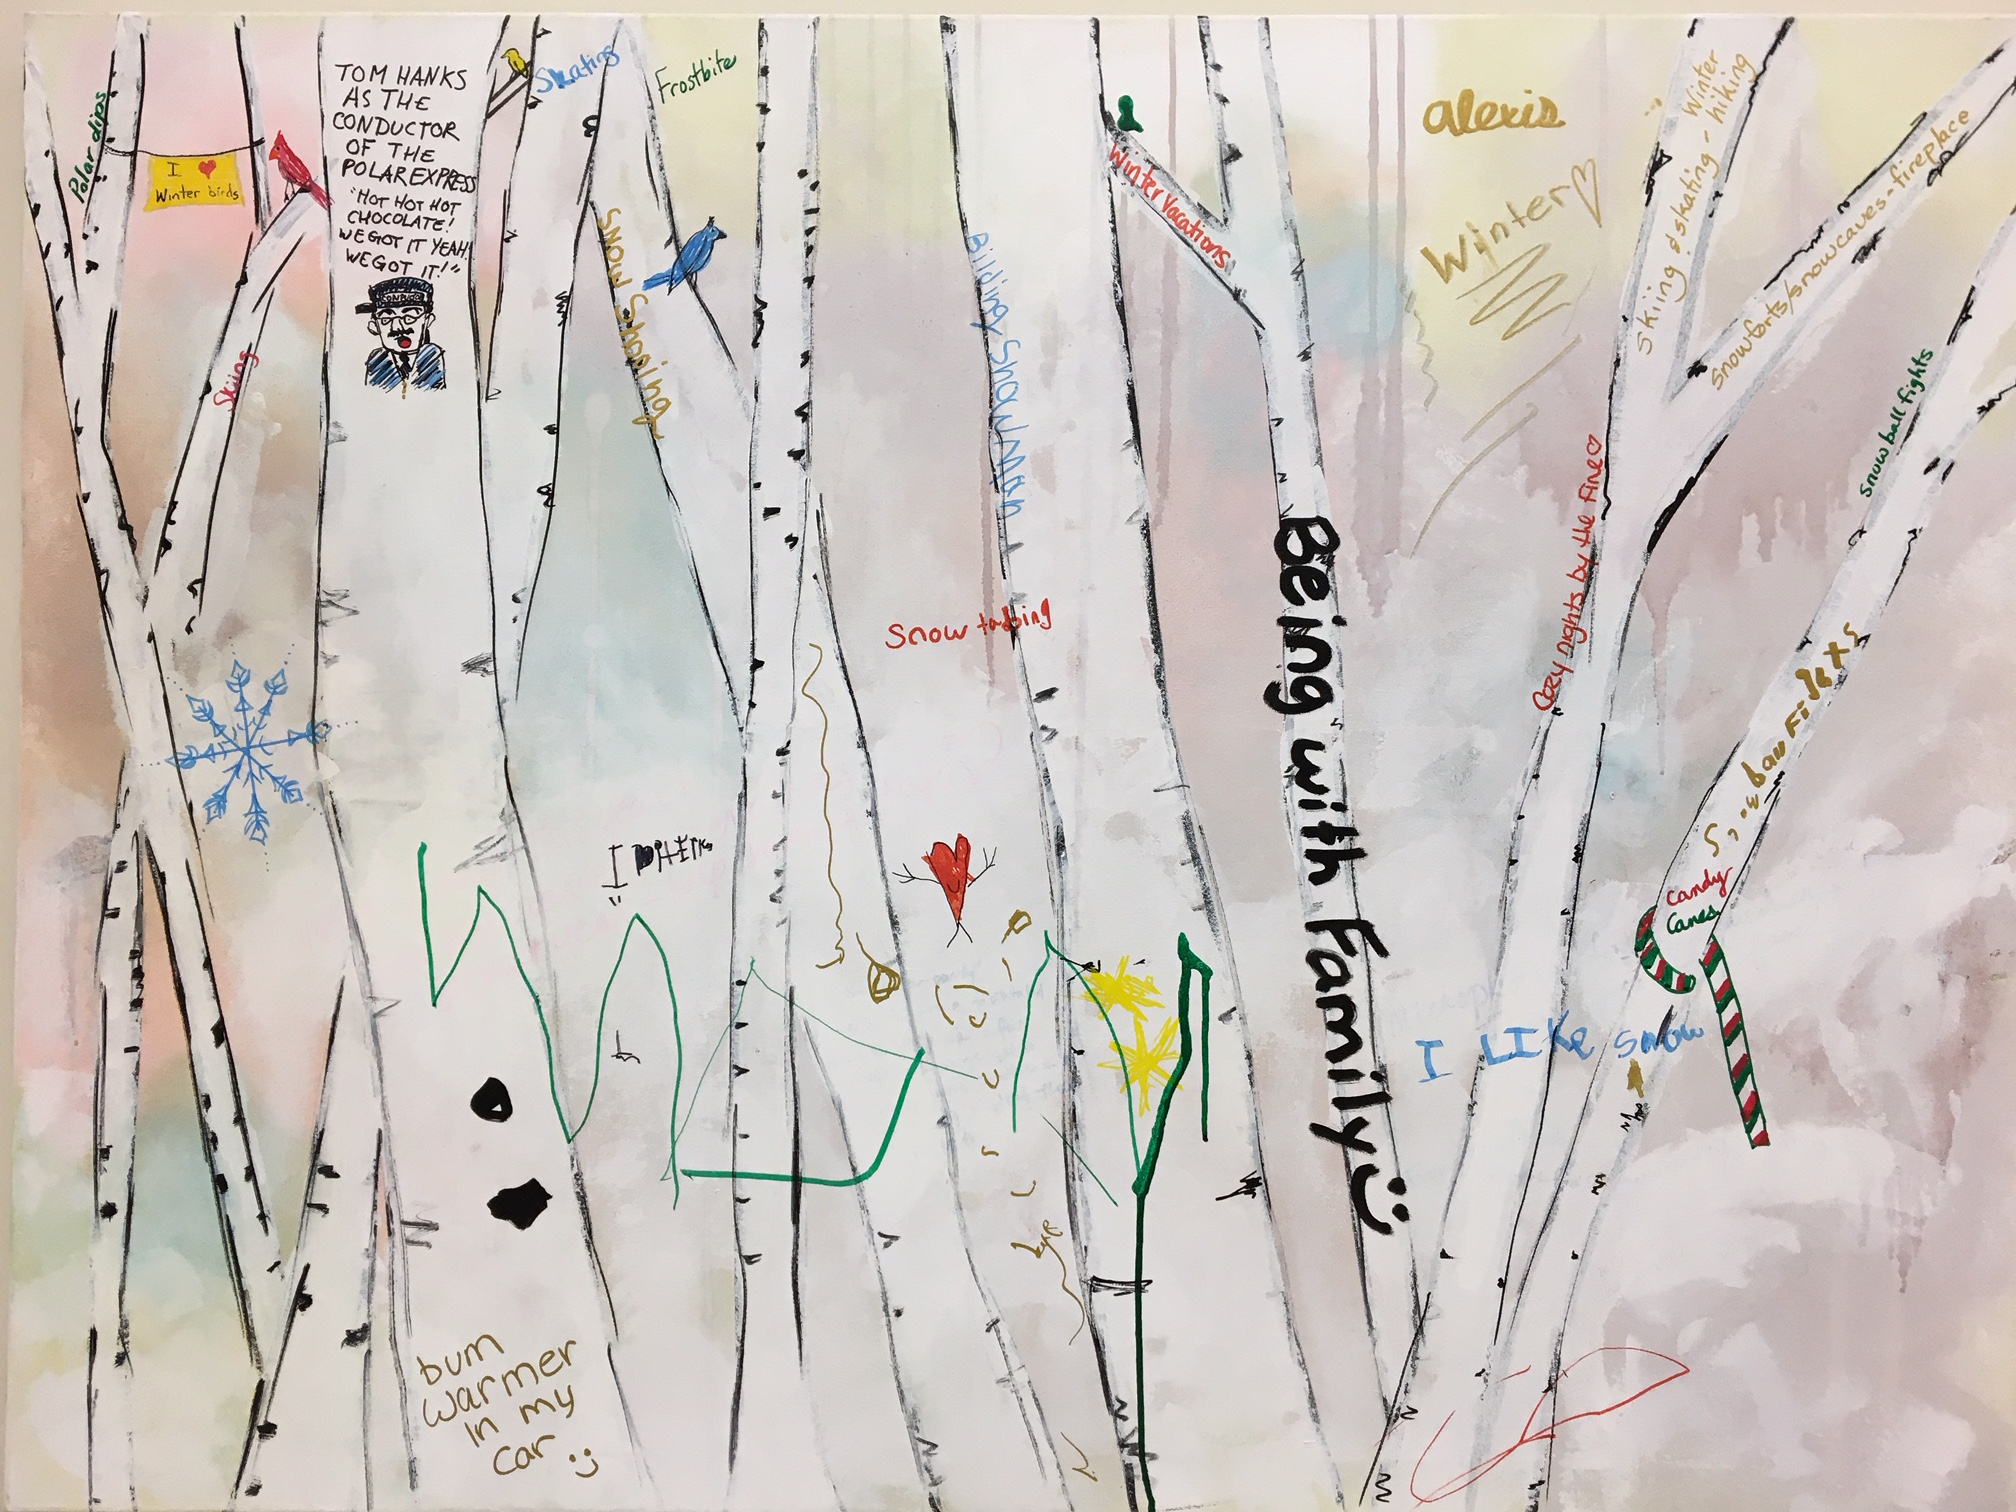 A canvas of words and sentences about winter